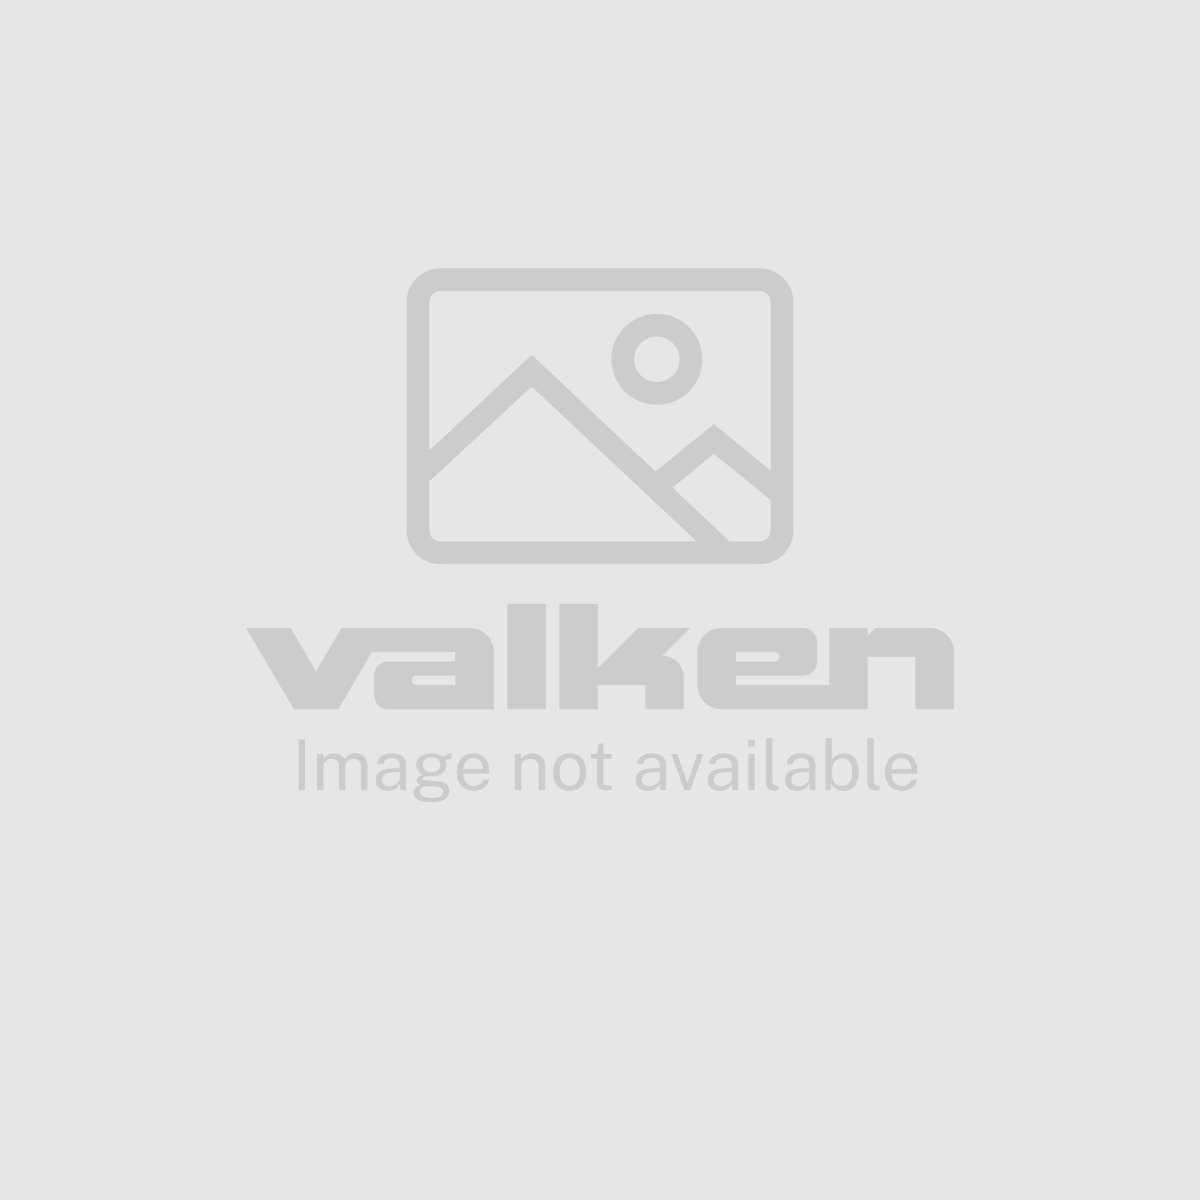 View larger image of Valken MI Replacement Strap Retainer Clips - 1 Pair